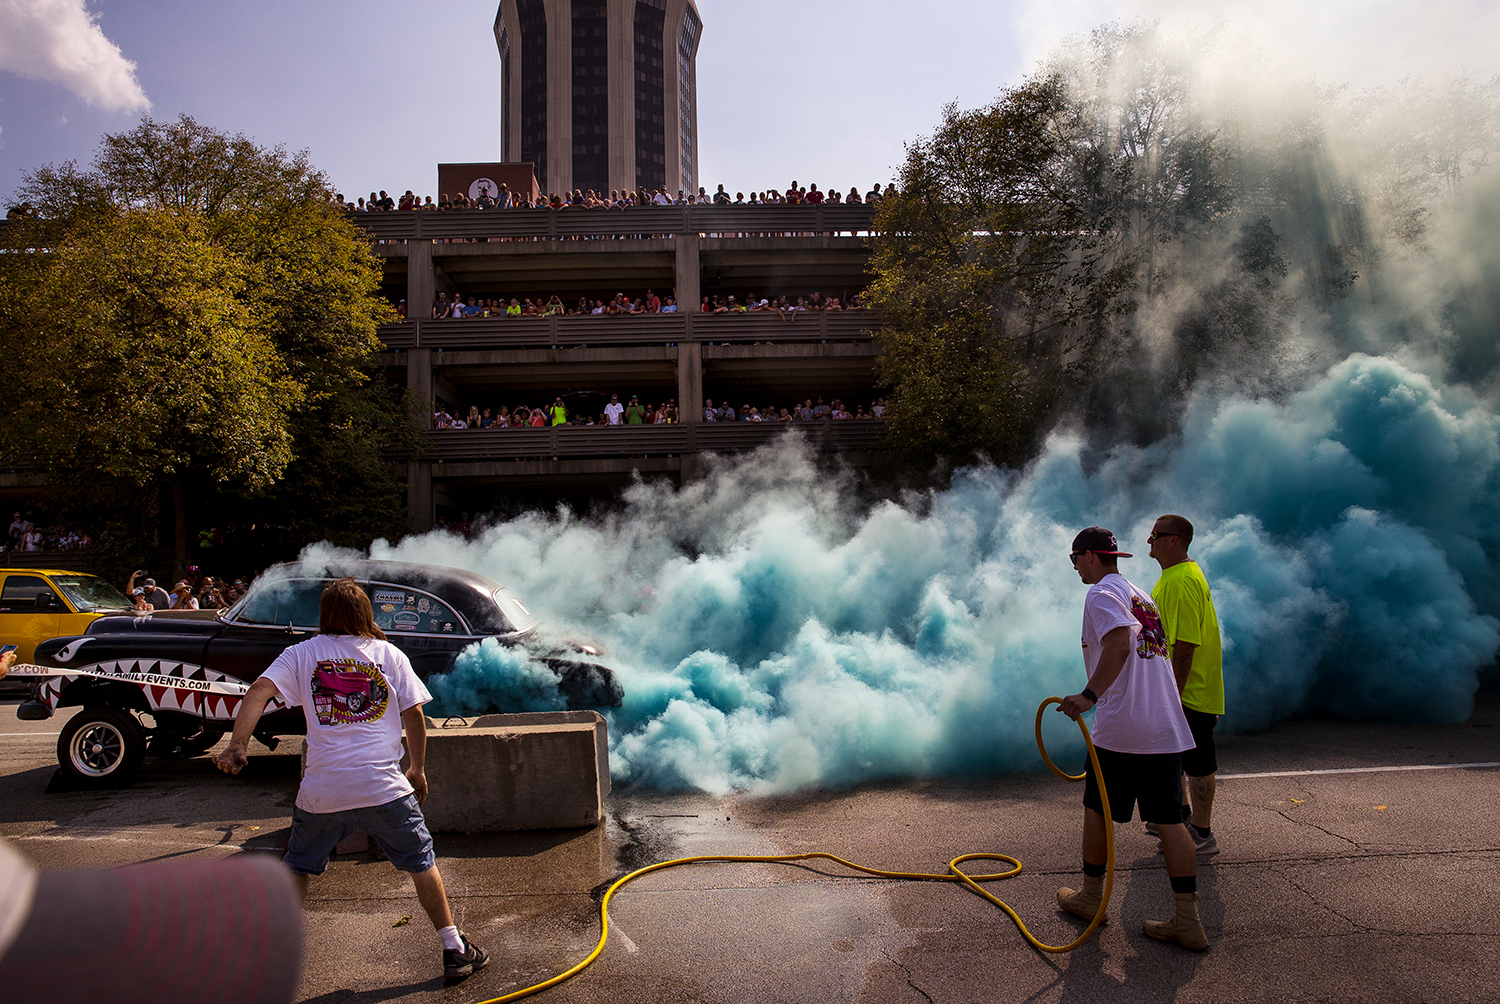 Smoke billows from a hot rod during a burnout contest at the International Route 66 Mother Road Festival in downtown Springfield Sept. 23. The blue smoke is the result of specialty tires that produce unique colors. Ted Schurter/The State Journal-Register